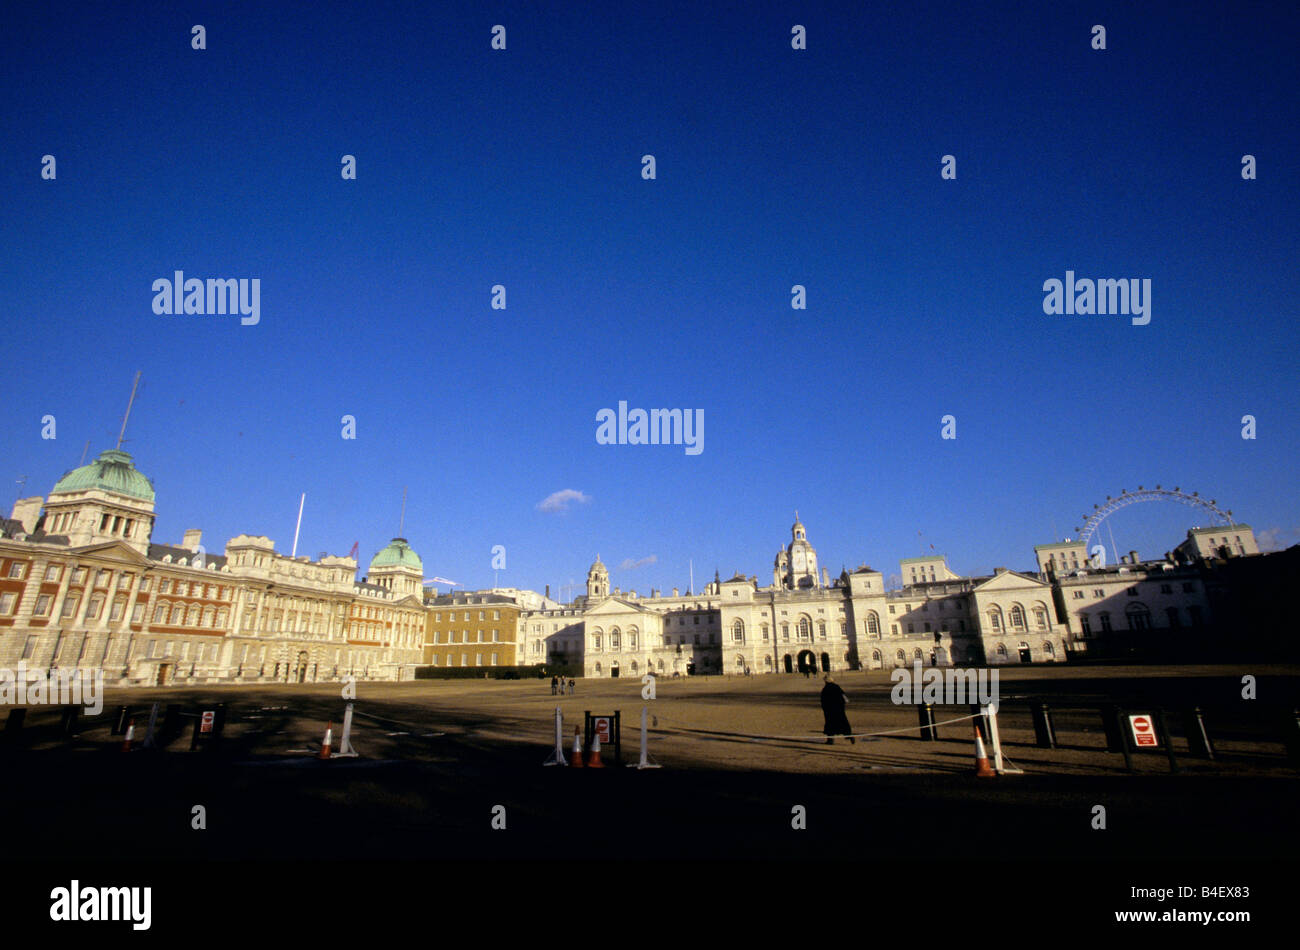 Horse Guards parade ground, Old Admiralty building, Horse Guards building, London Eye, England, UK Stock Photo